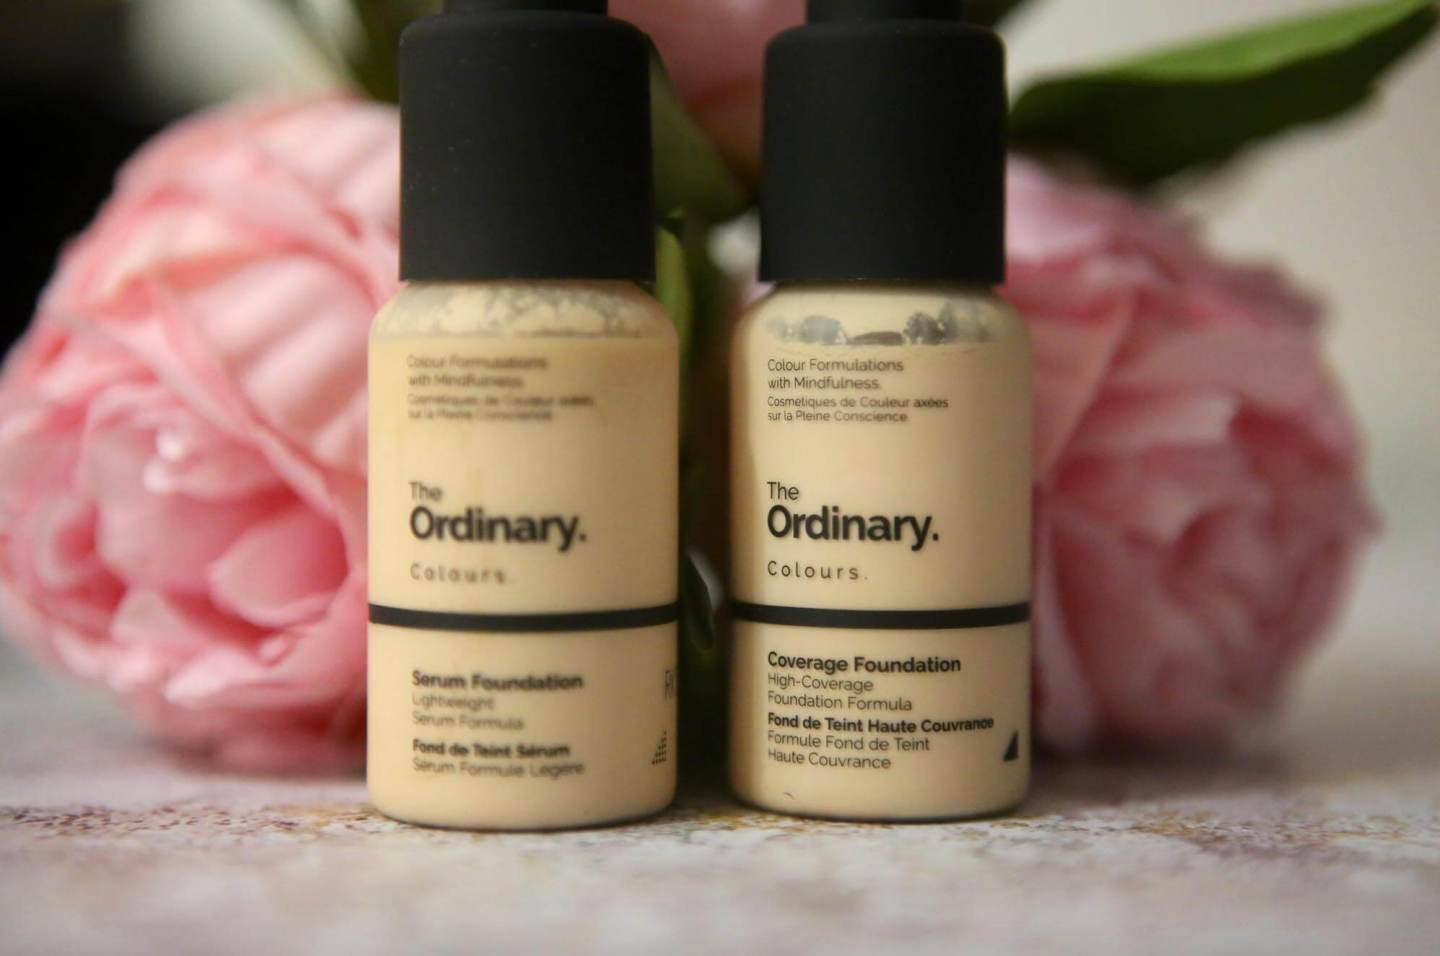 Is There A Bit Too Much Hype Over The Ordinary Skincare?